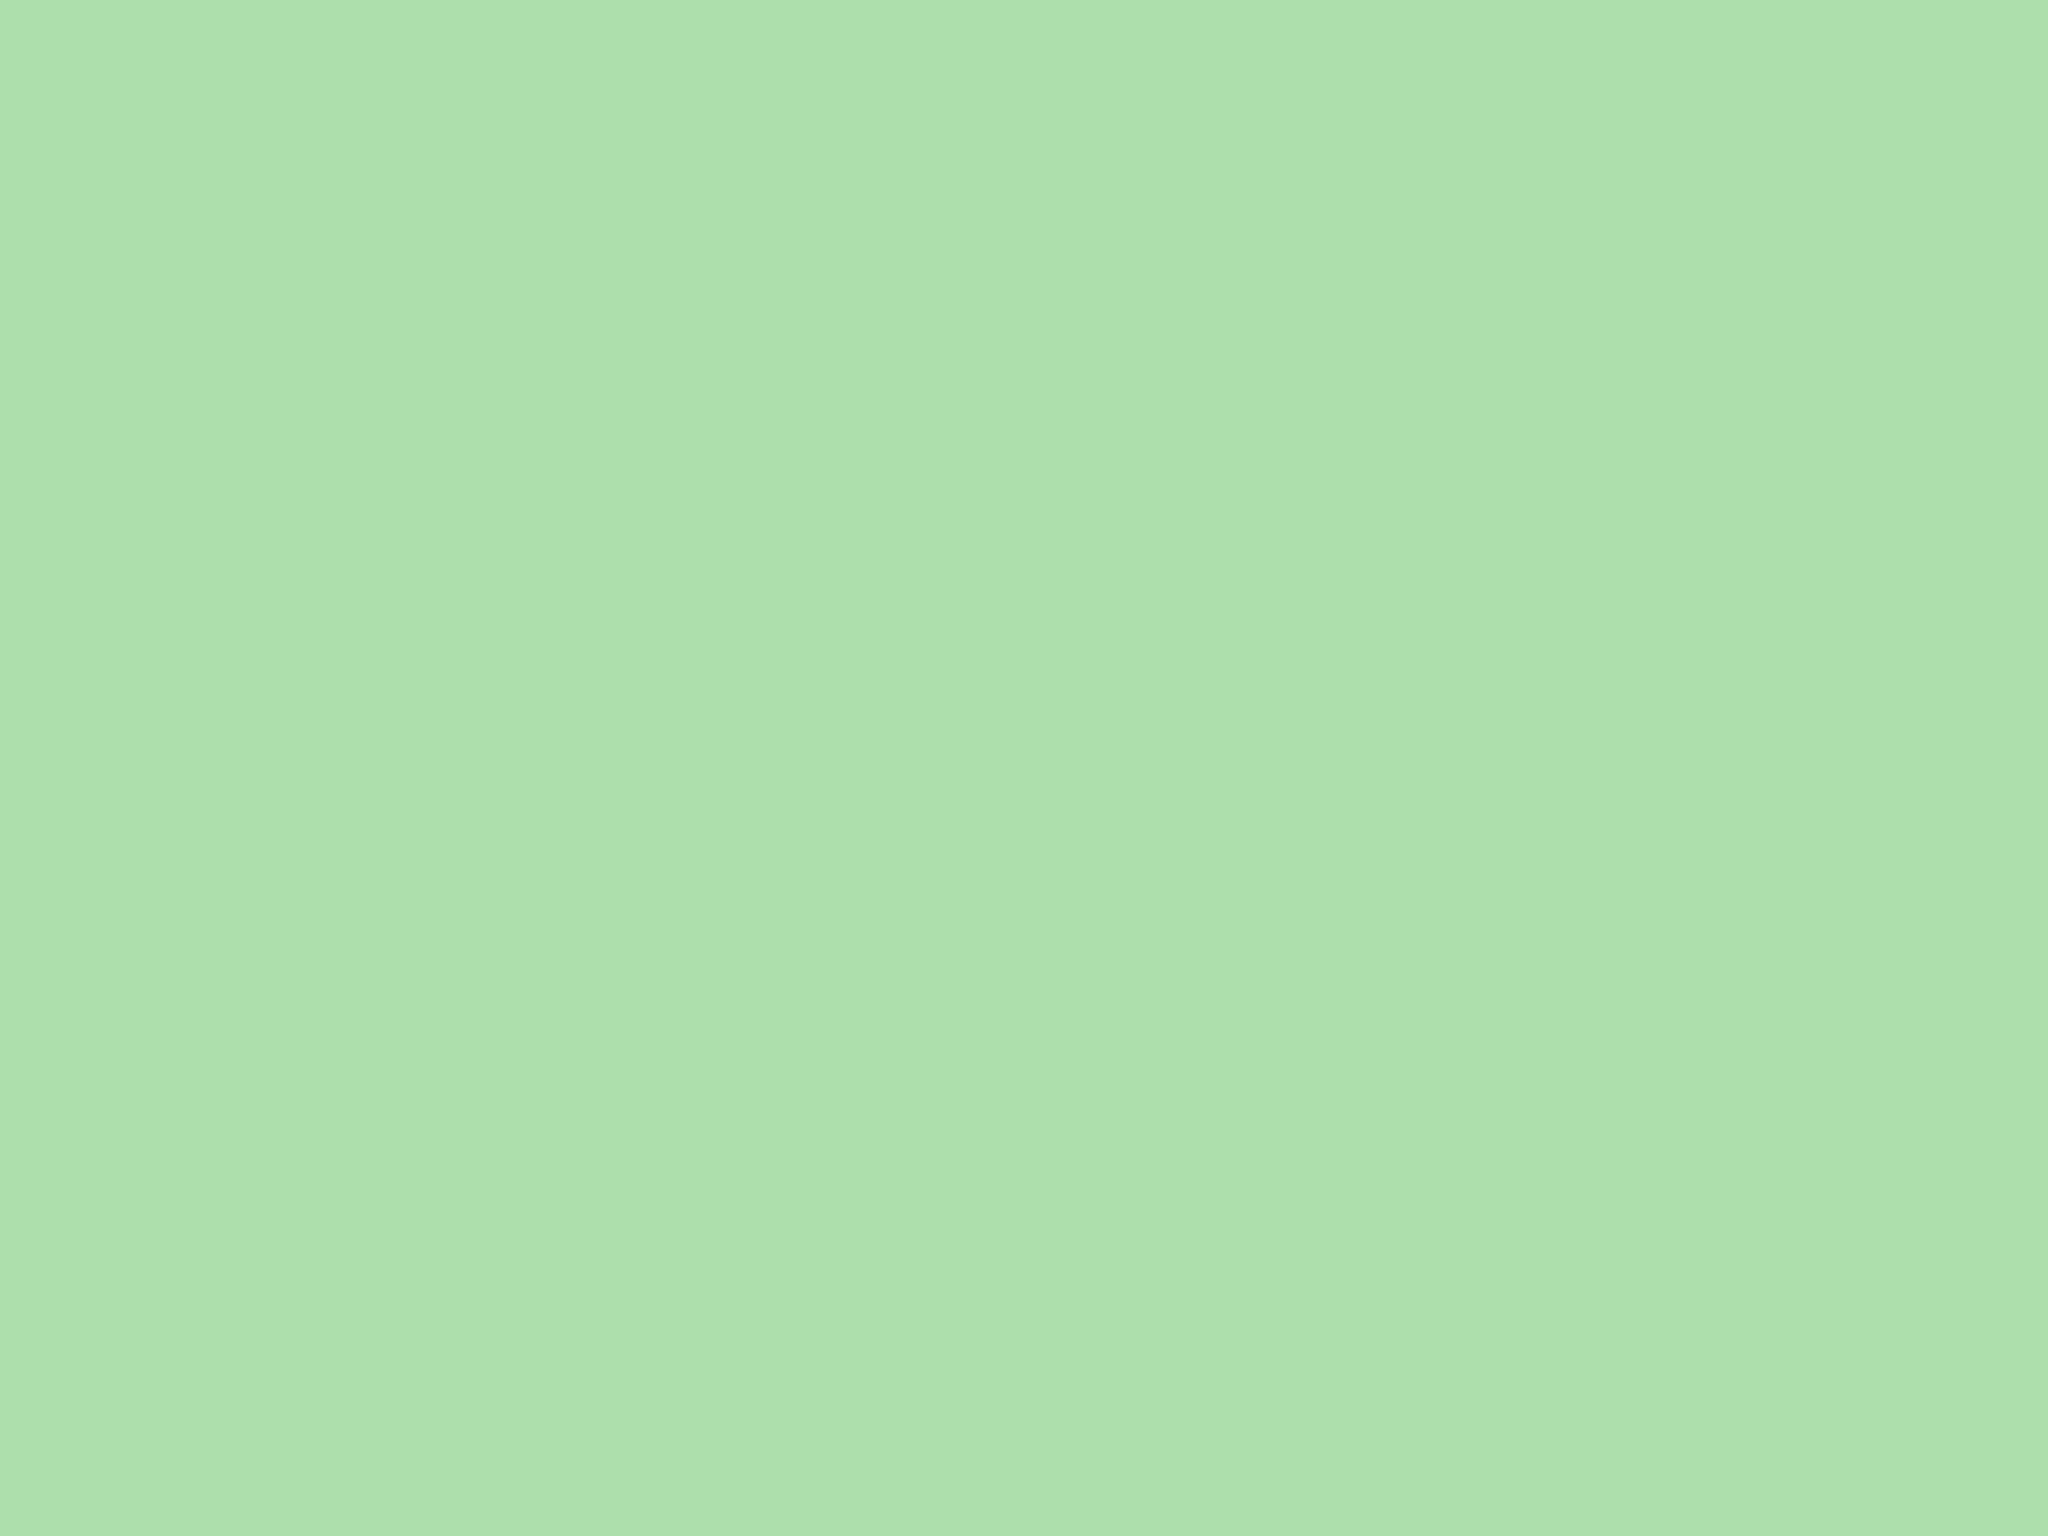 2048x1536 Light Moss Green Solid Color Background